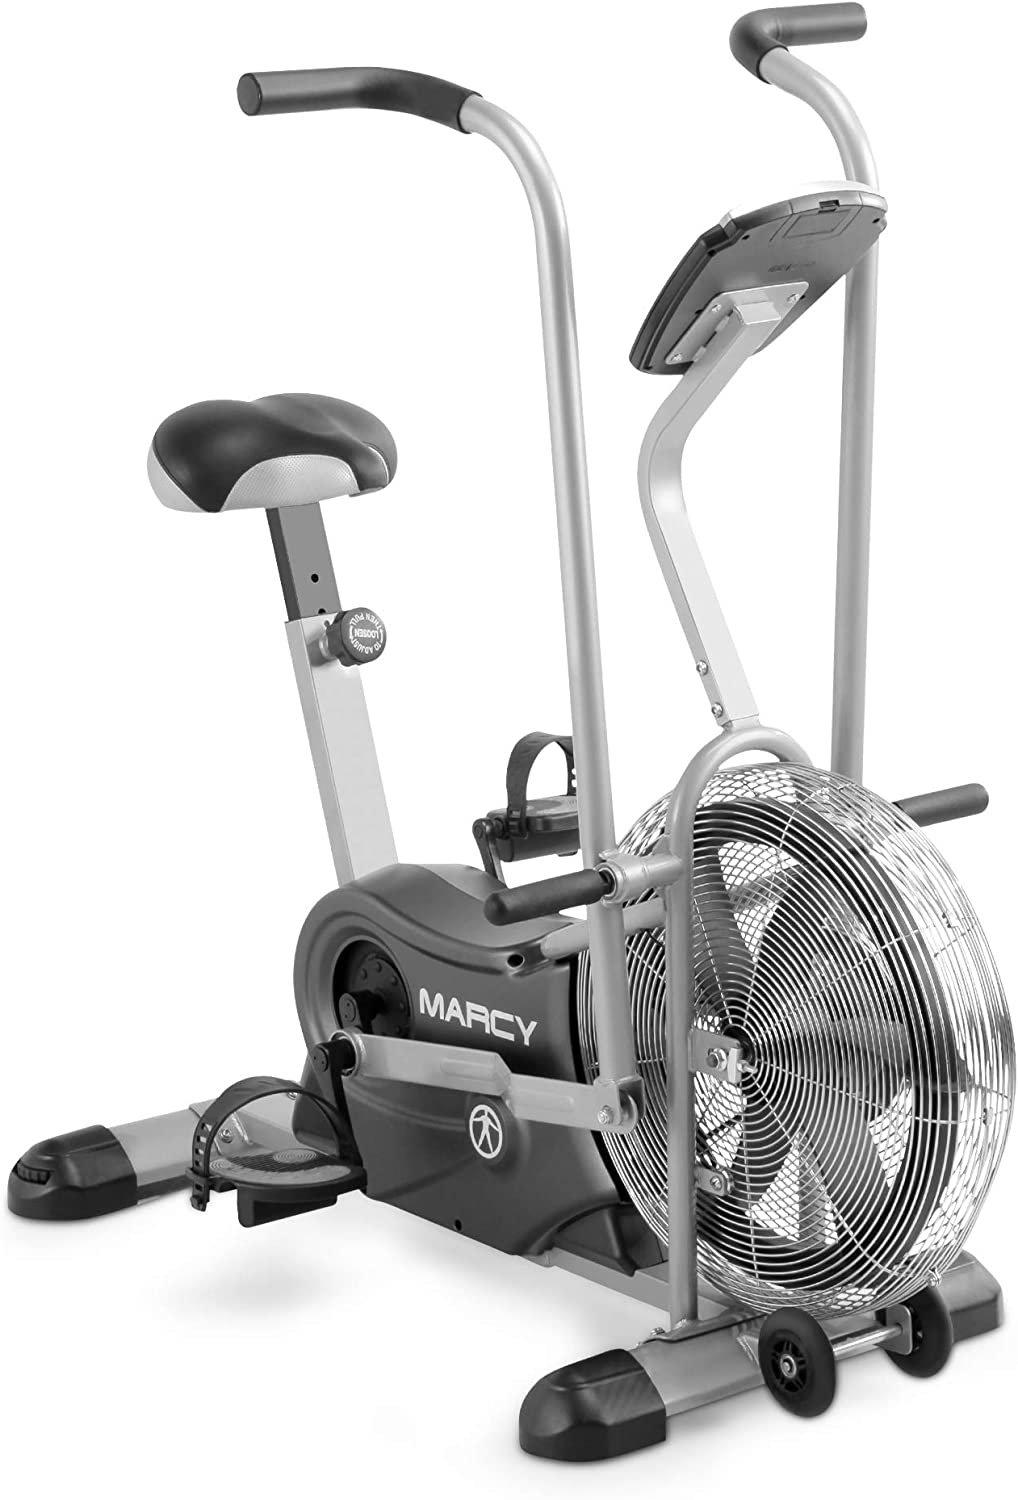 Marcy Exercise Upright Fan Bike